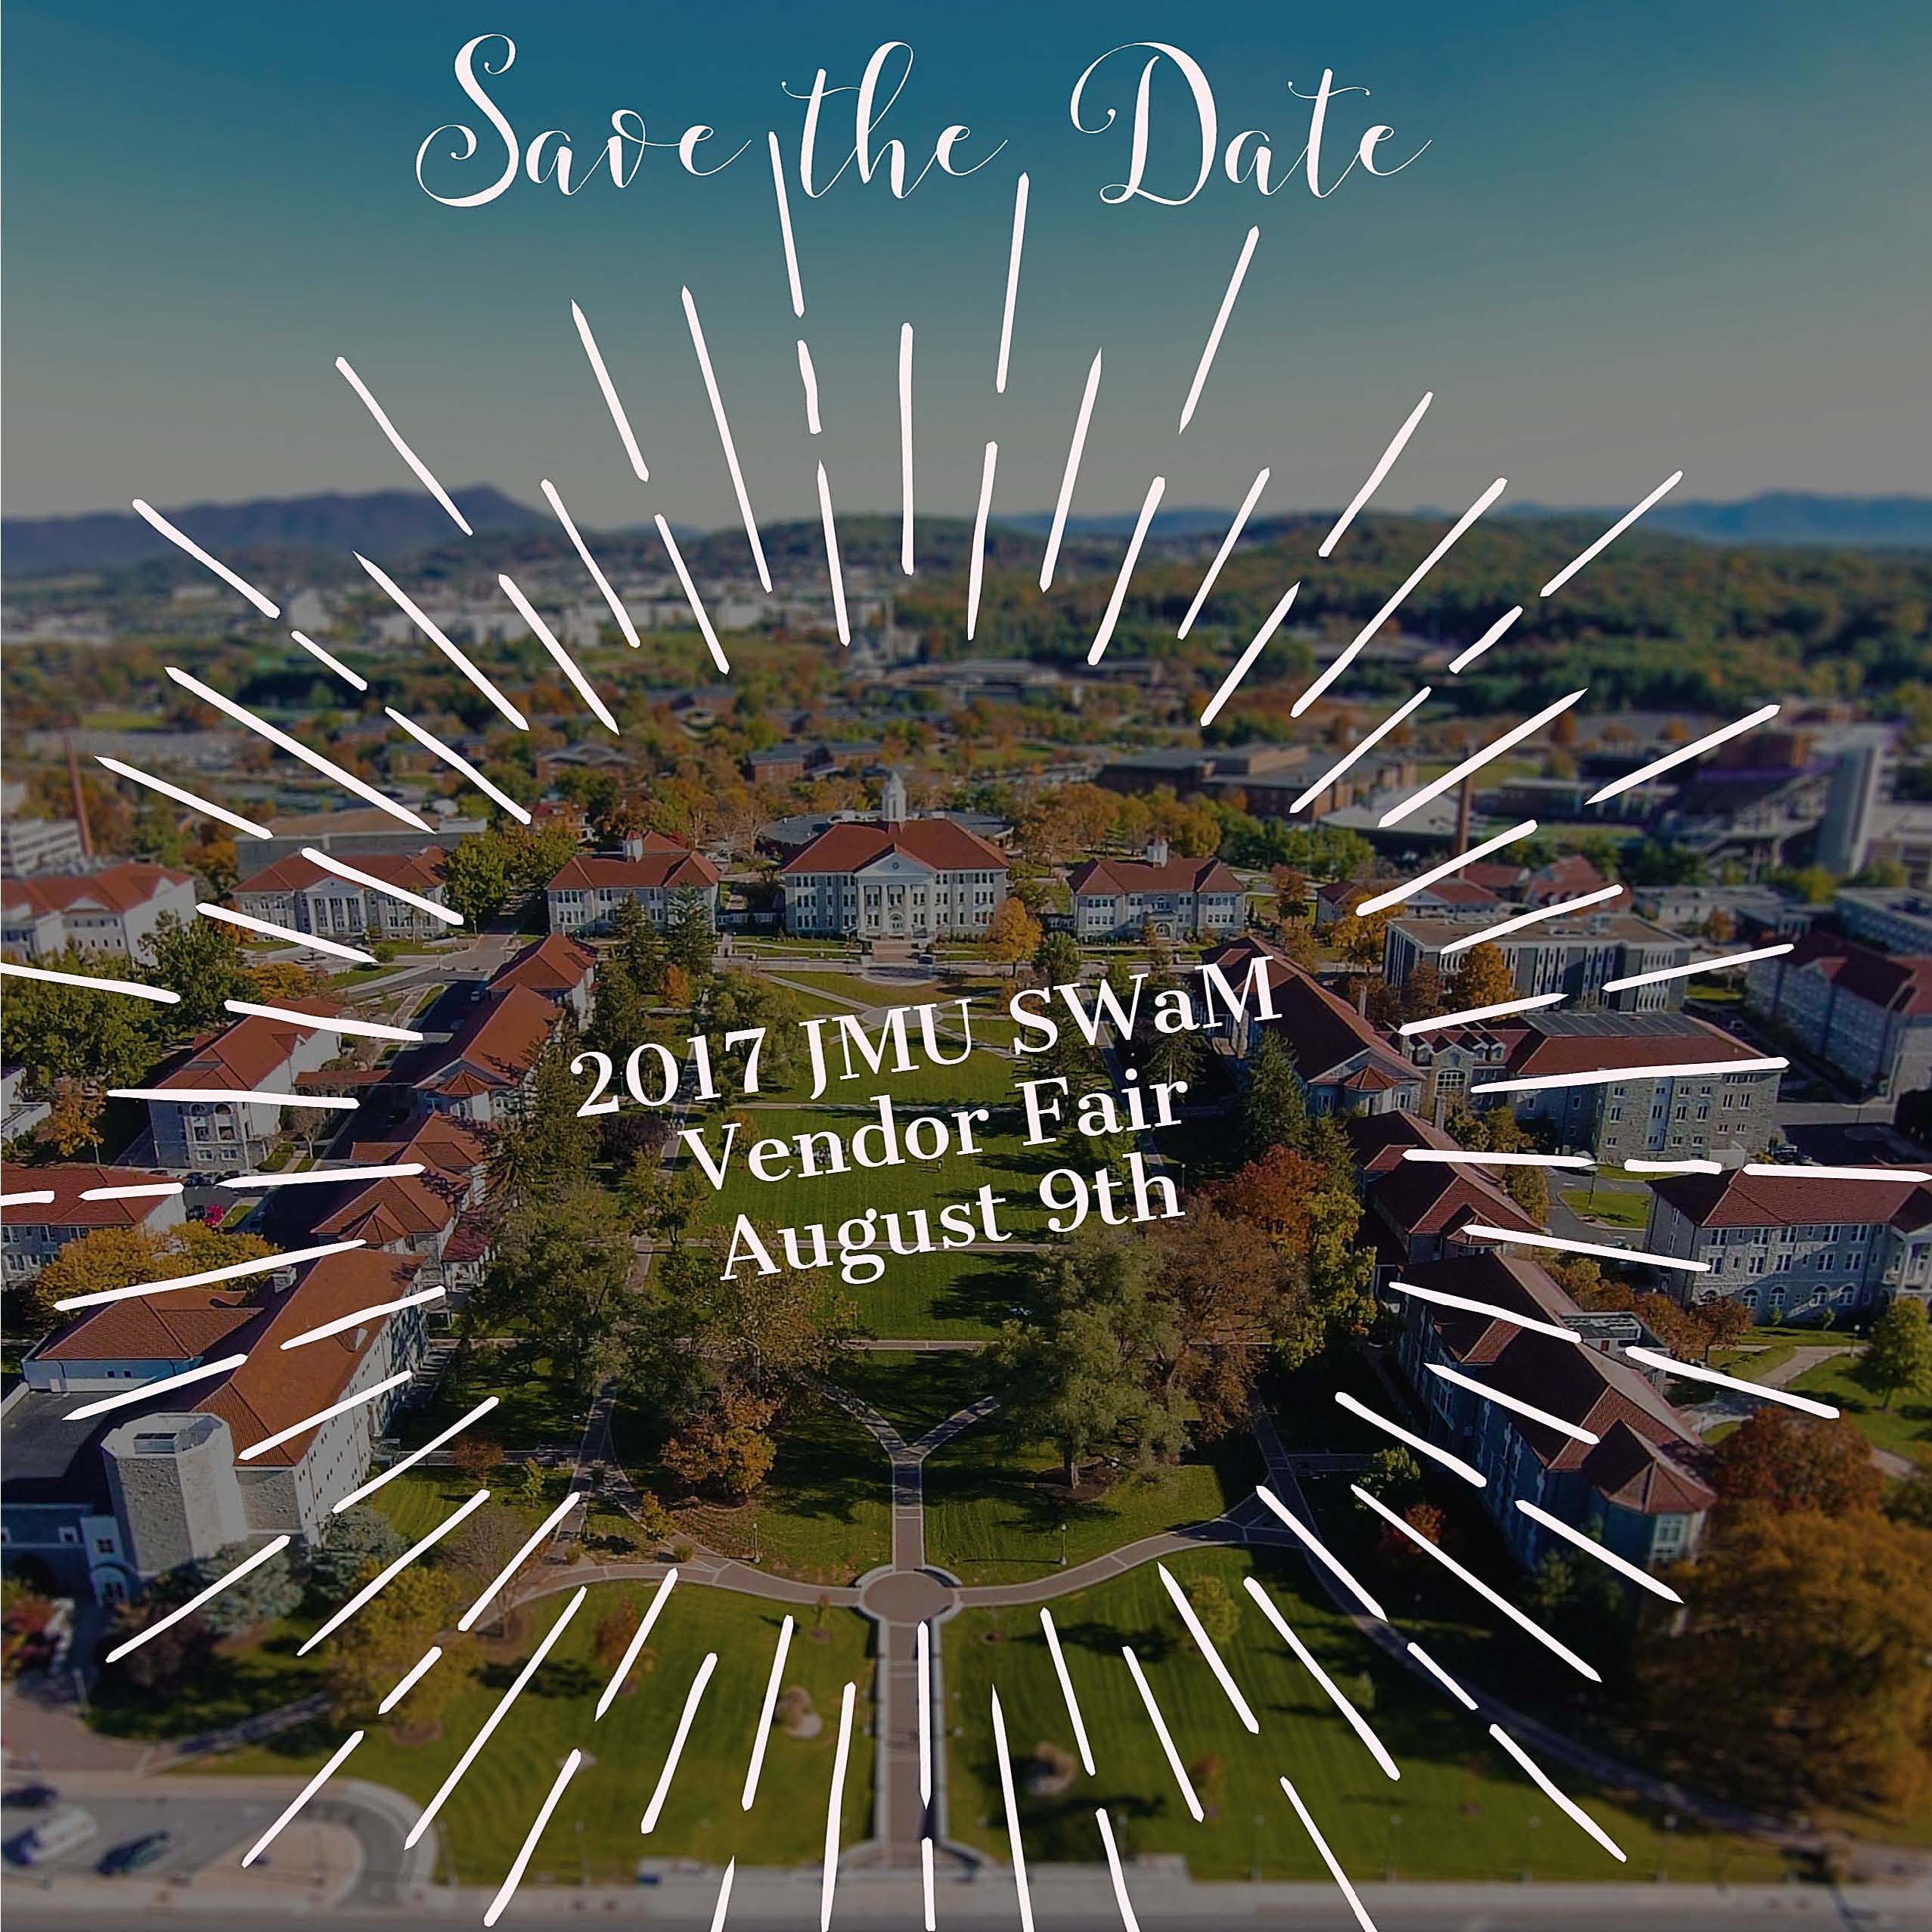 SWaM Vendor Fair Save The Date